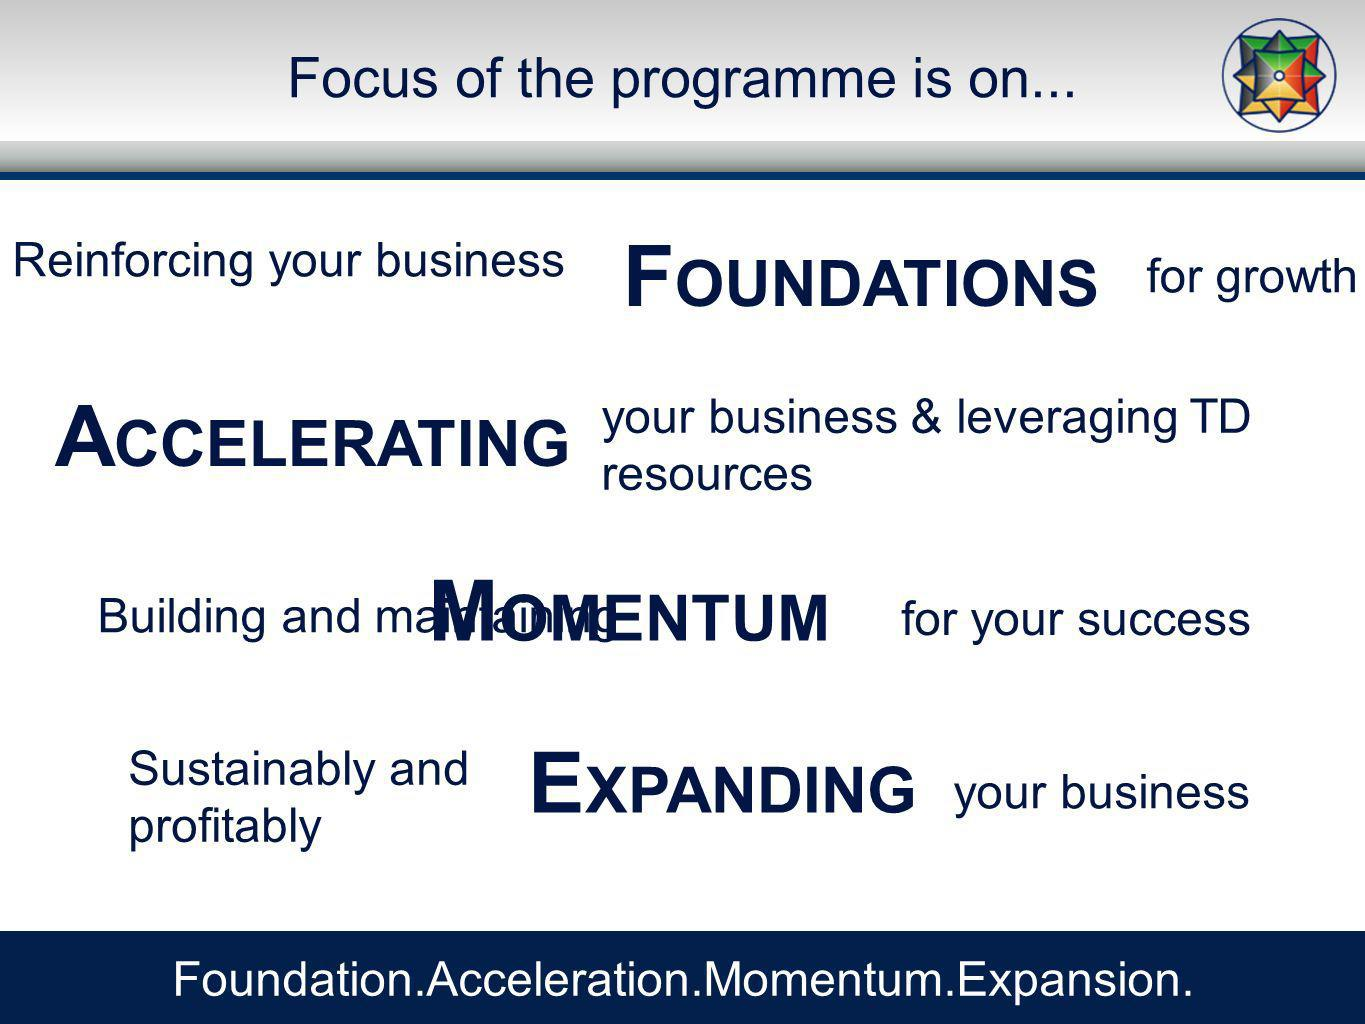 Focus of the programme is on... Foundation.Acceleration.Momentum.Expansion.